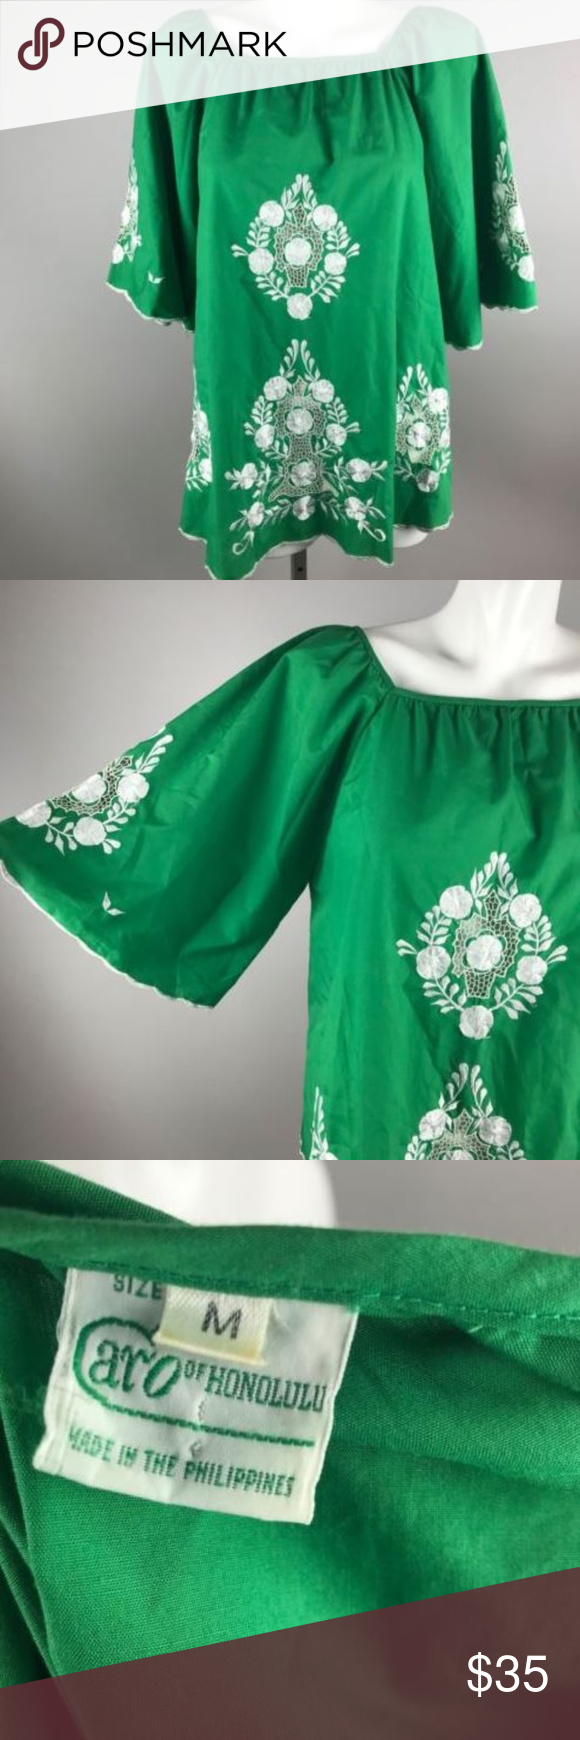 02787ede69e Vtg 70s Caro Of Honolulu Green Long Sleeve Top M Vtg 70s Caro Of Honolulu  Green